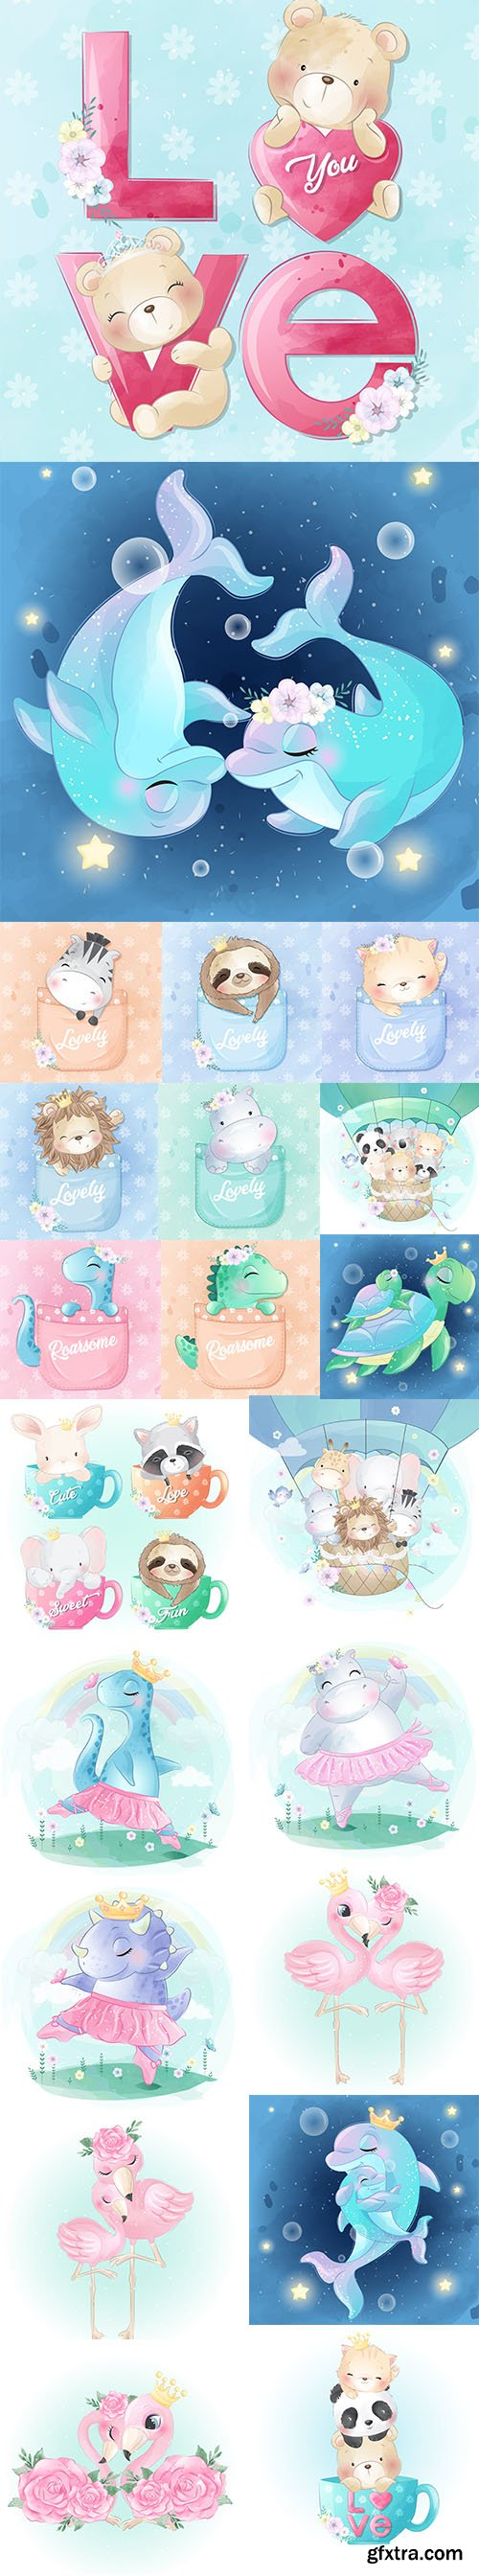 Adorable Little Animals Baby Illustration Collection